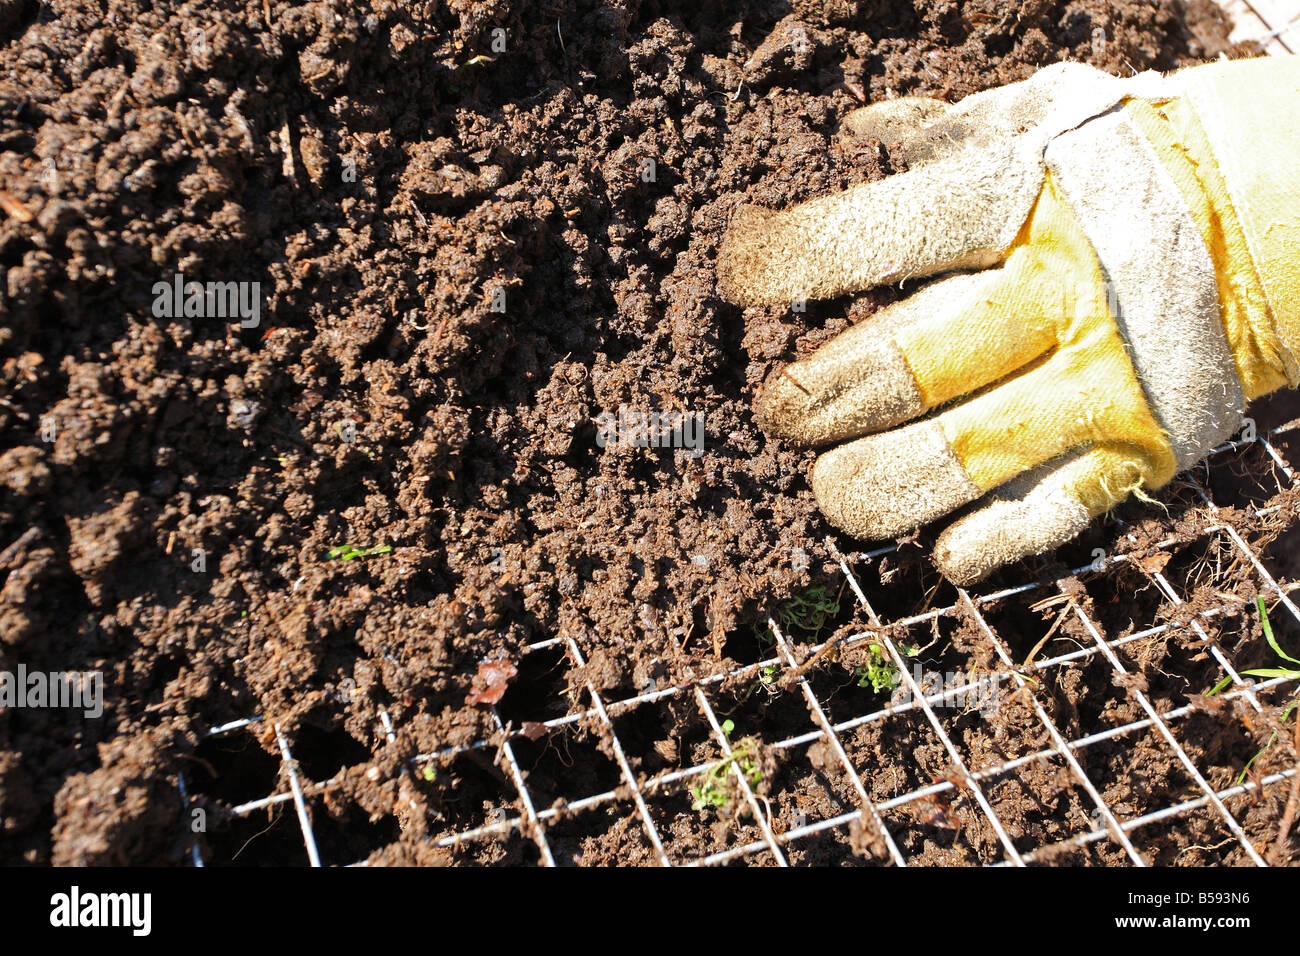 SIEVING COMPOST THROUGH 1 INCH MESH TO REMOVE ANY LARGE LUMPS CLOSE UP - Stock Image